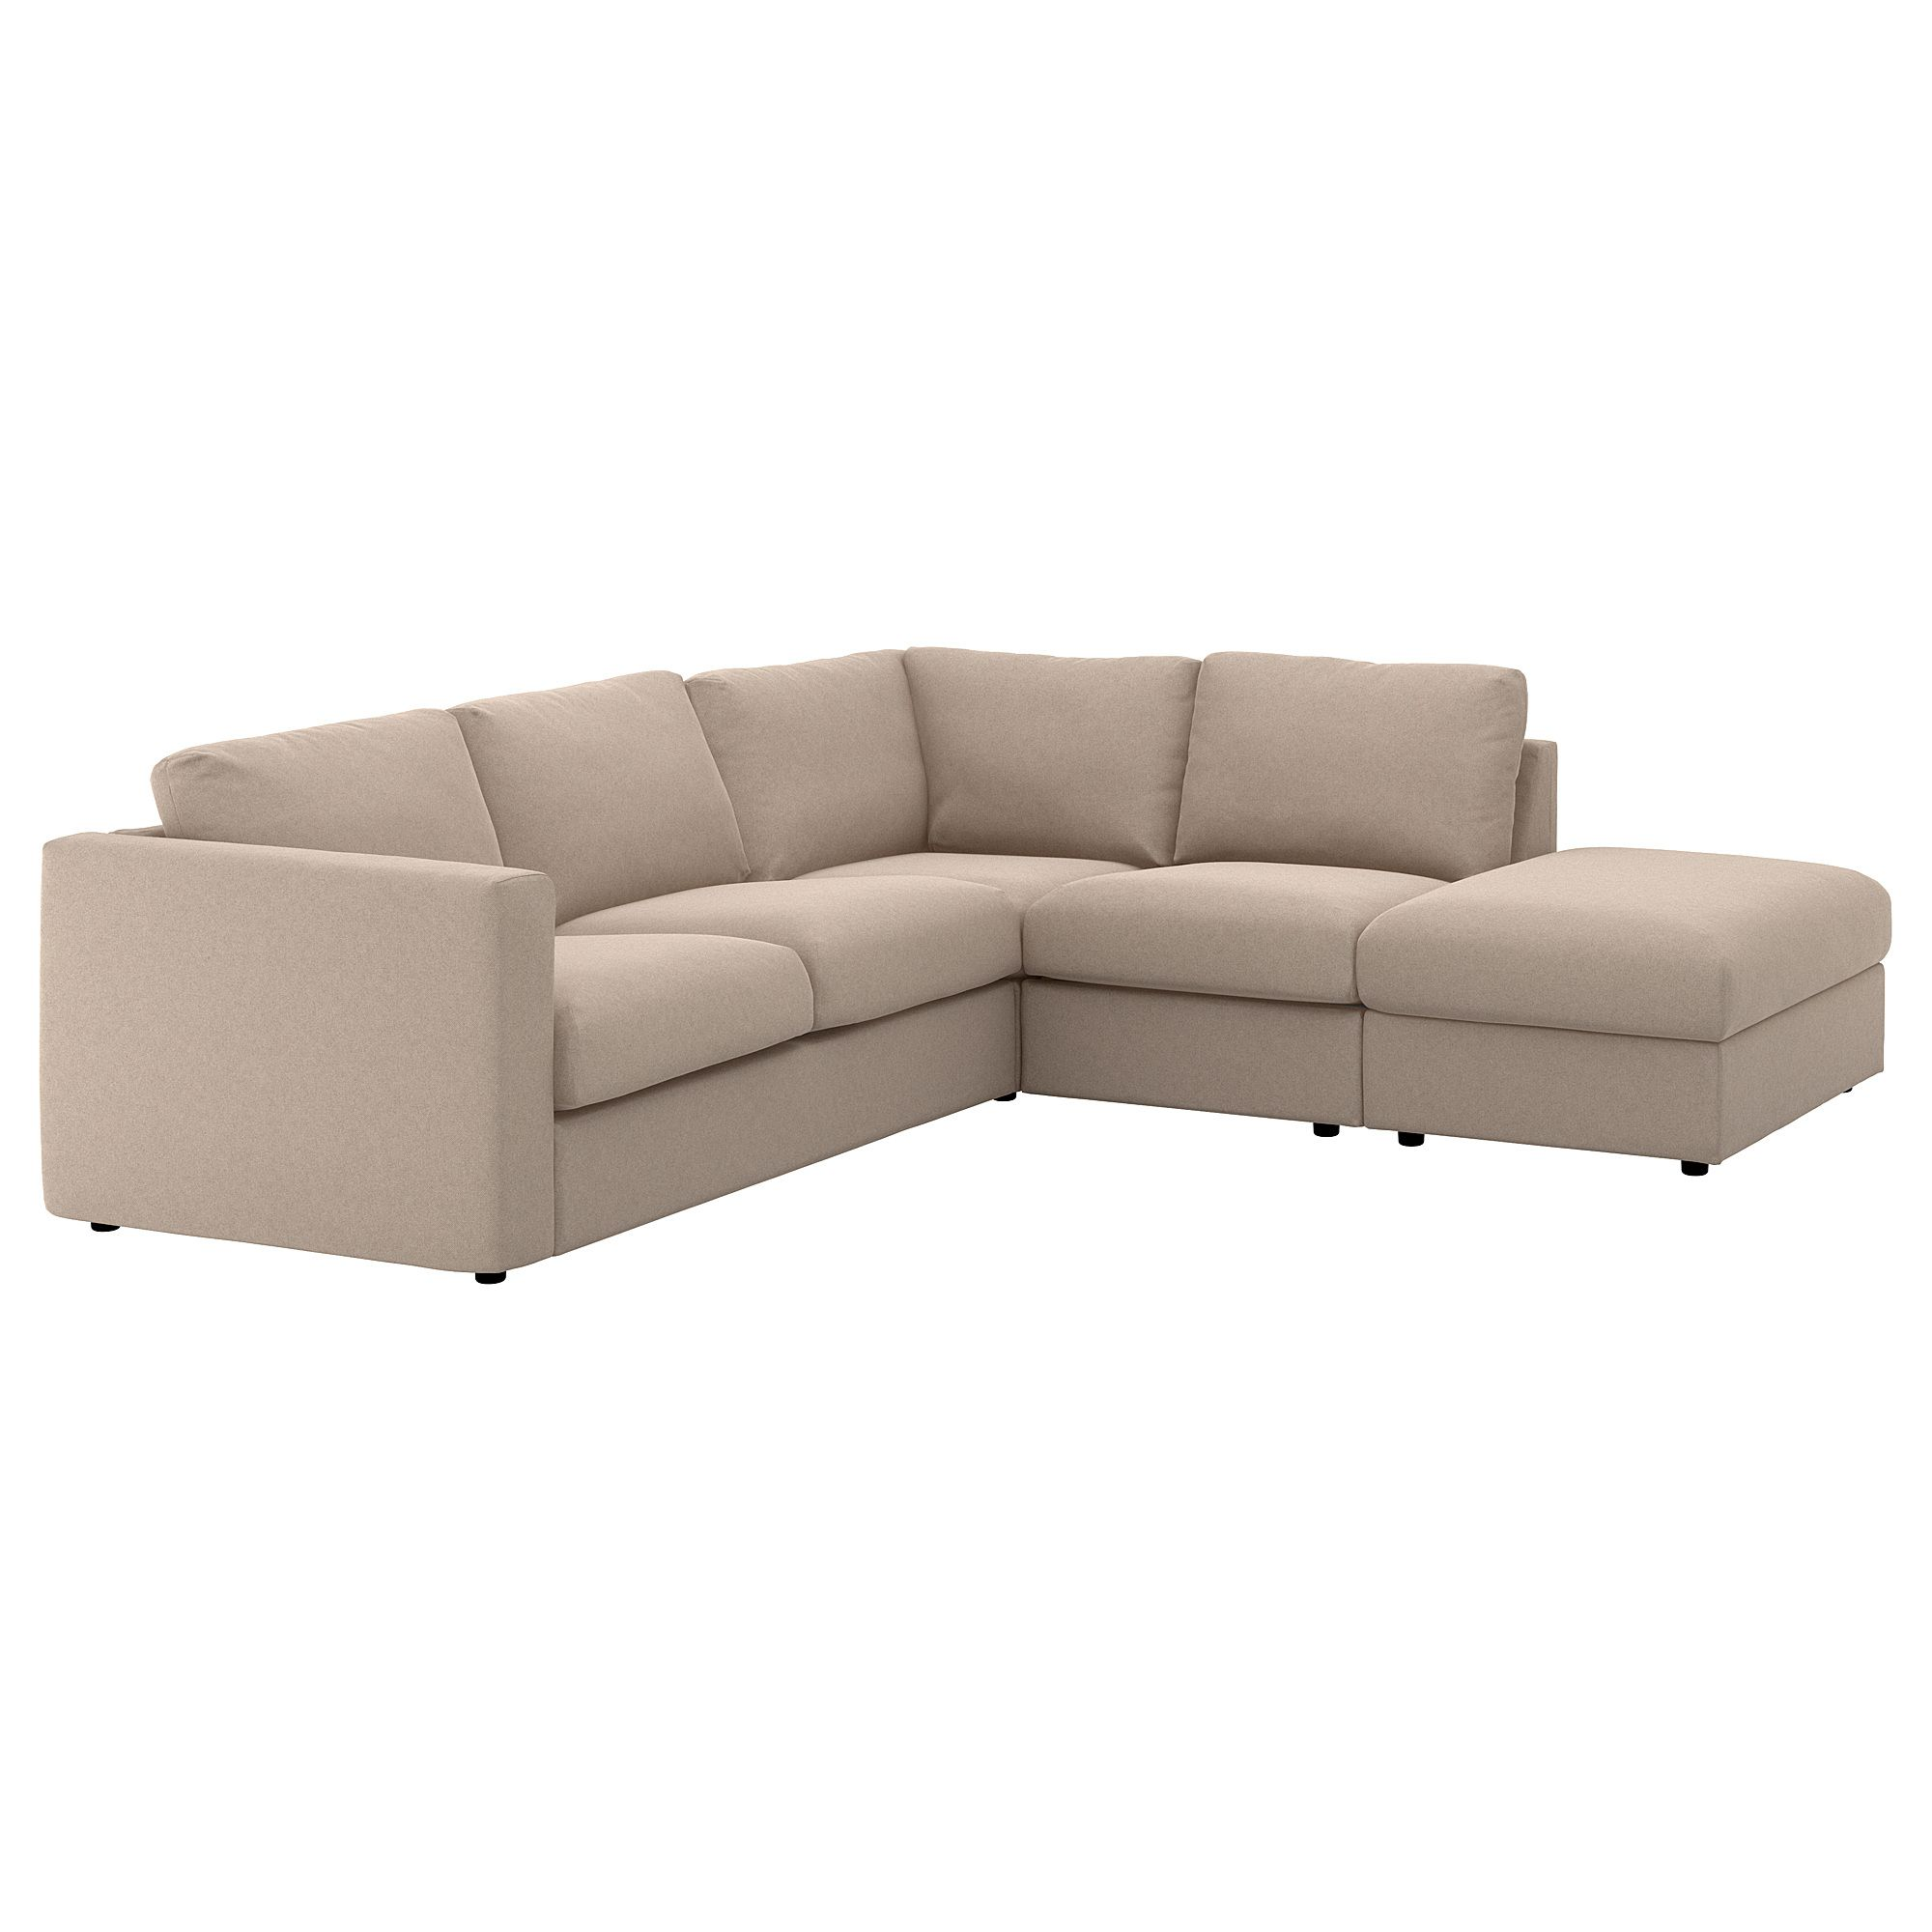 Ikea Vimle With Open End Tallmyra Beige Sectional 4 Seat